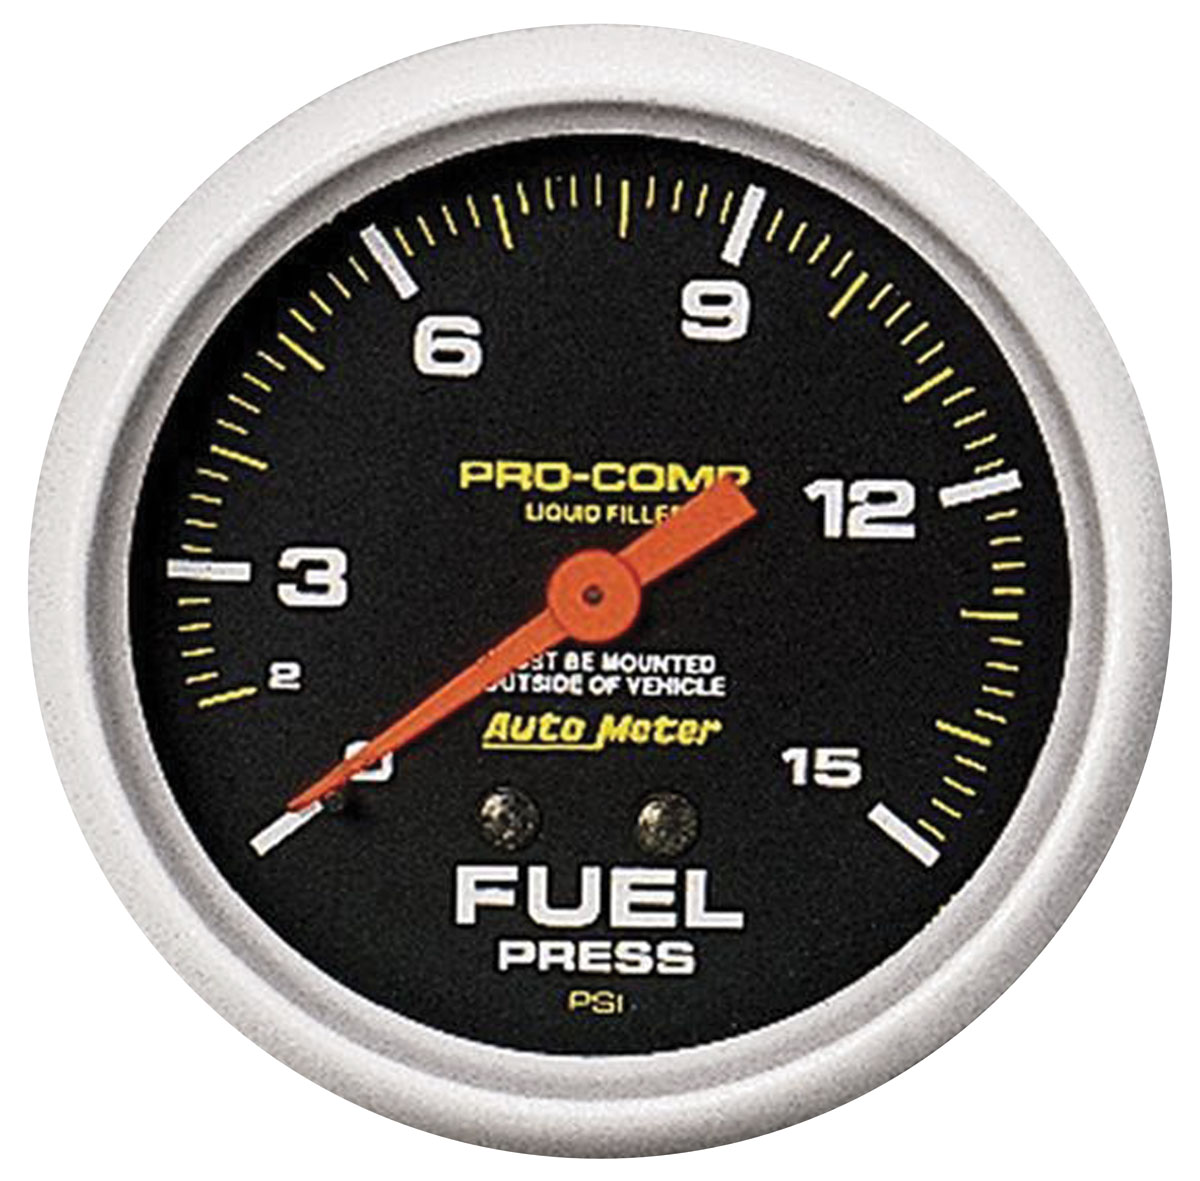 "Photo of Gauges, Pro-Comp Liquid-Filled 2-5/8"" fuel pressure (0-15 PSI)"